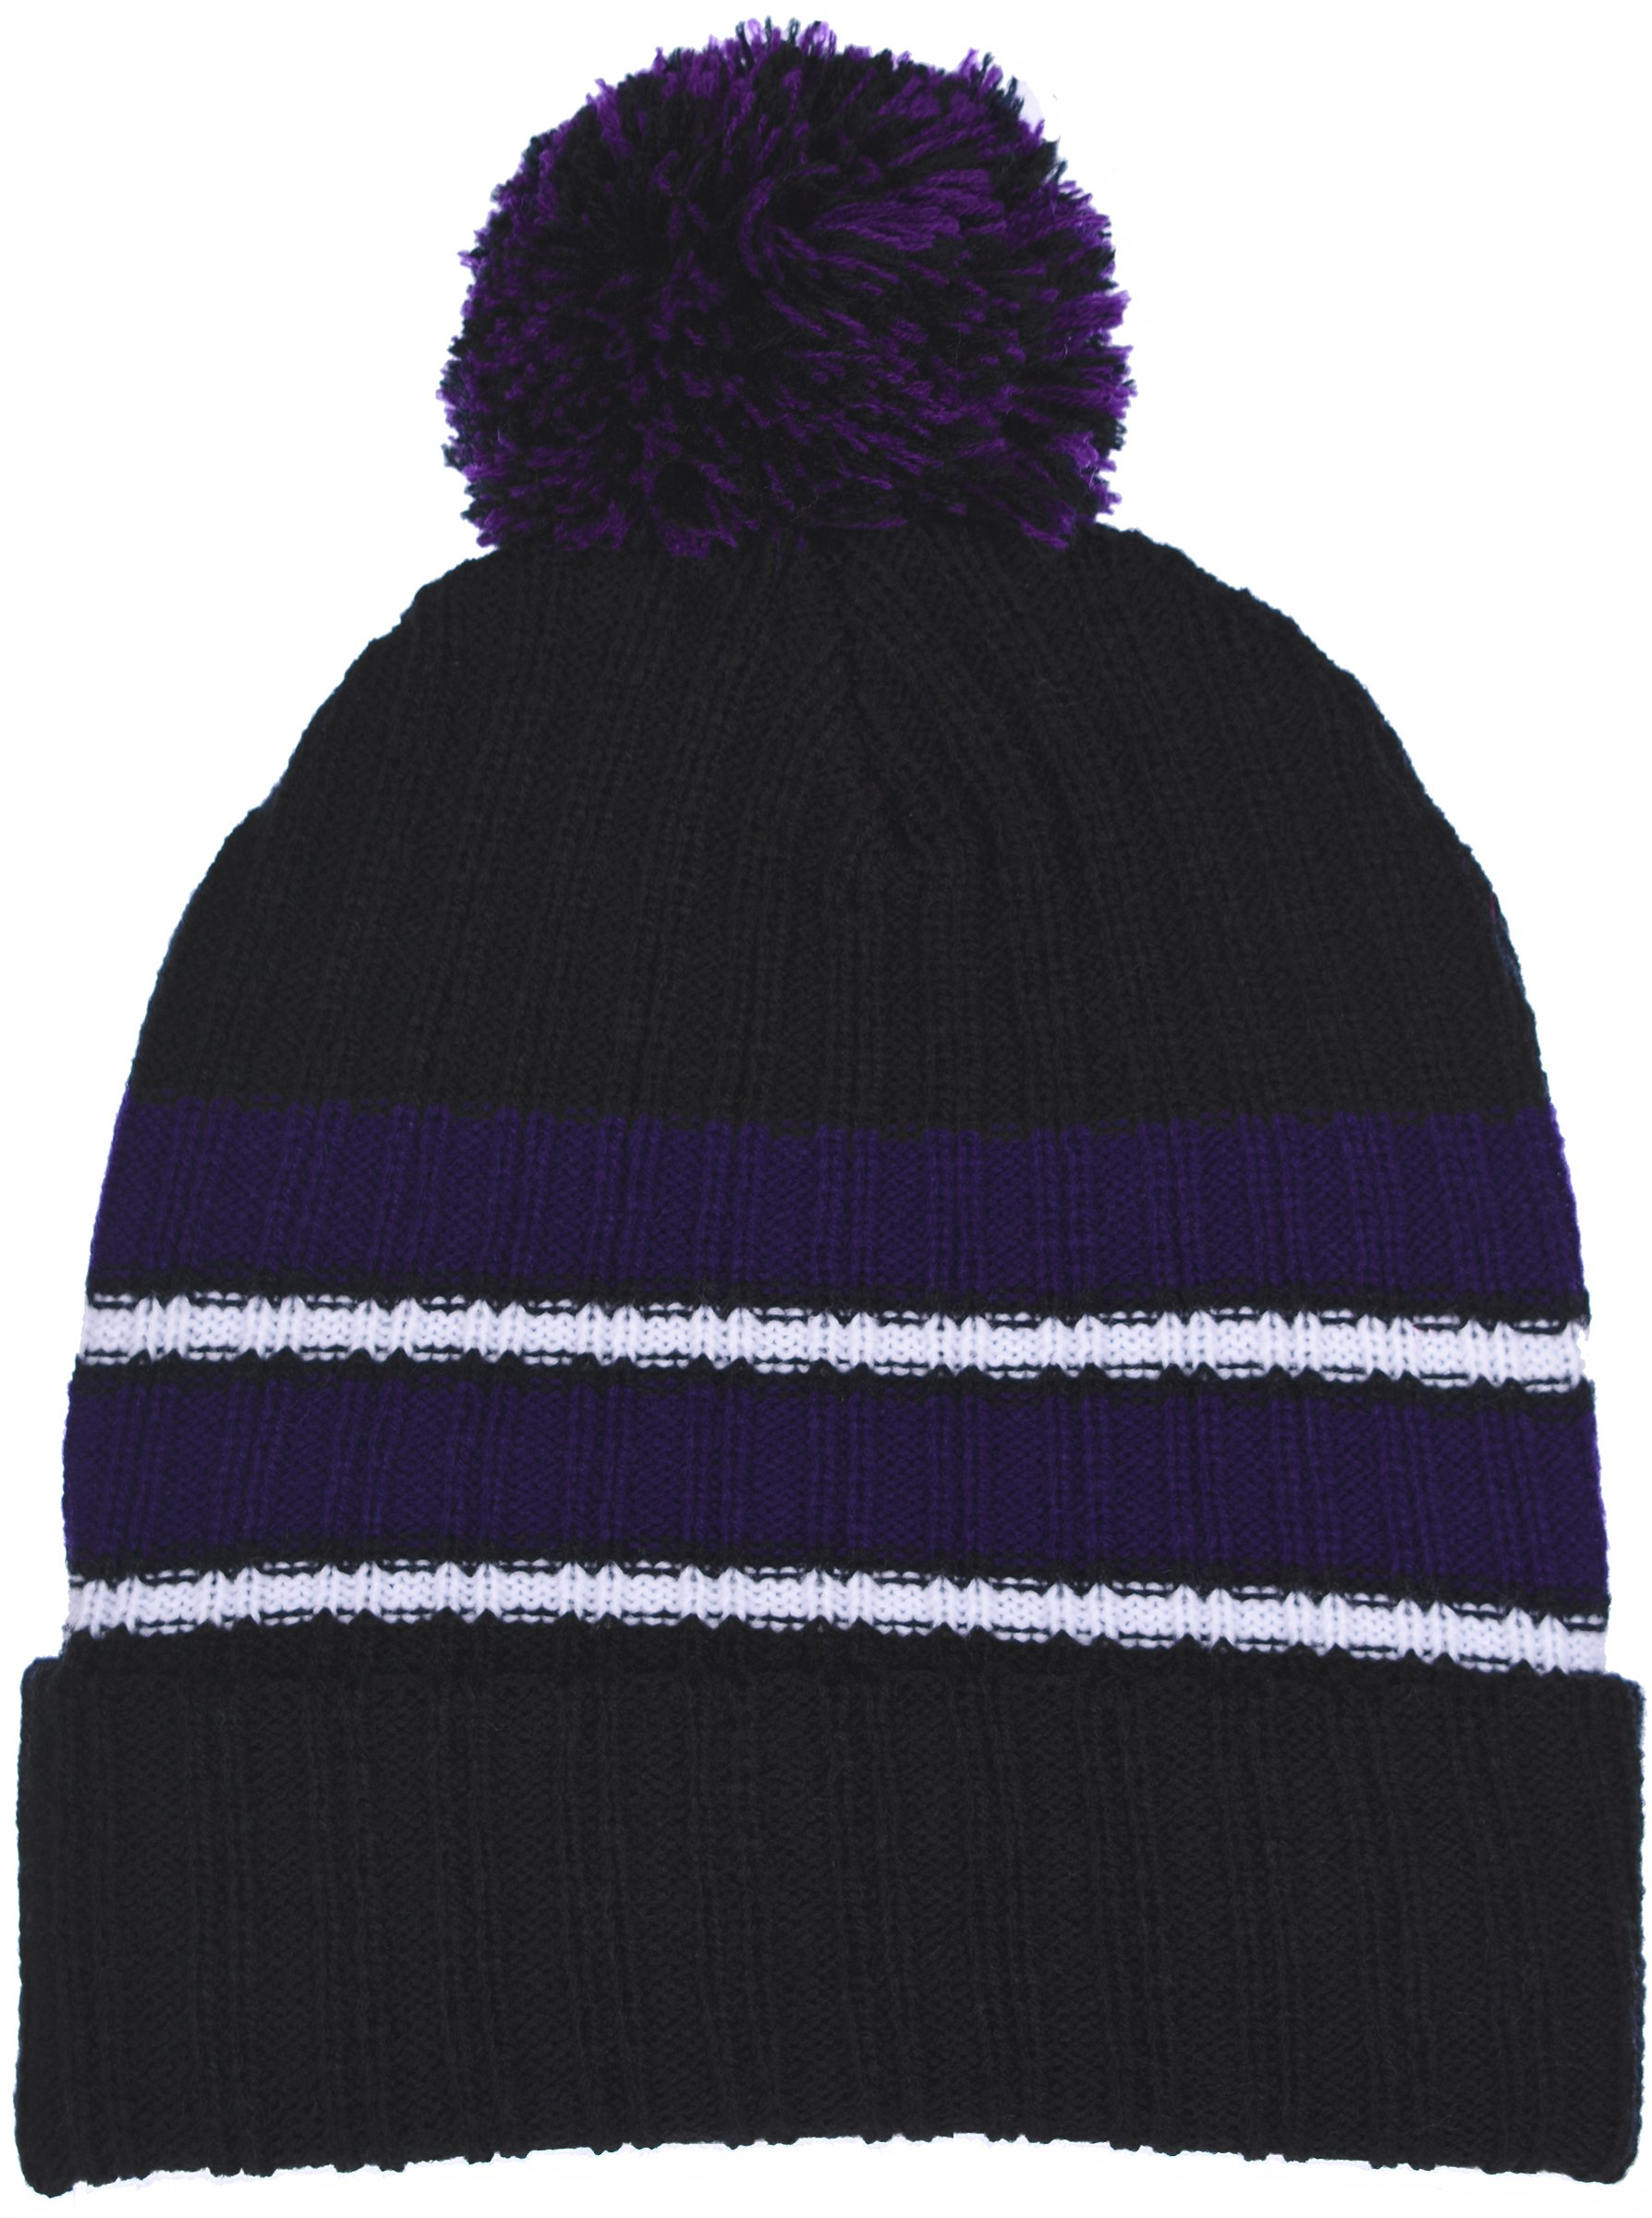 Polar Wear Boy's Cuffed Knit Hat with Pom and Stripes in 6 Color Combinations (Black - Purple)